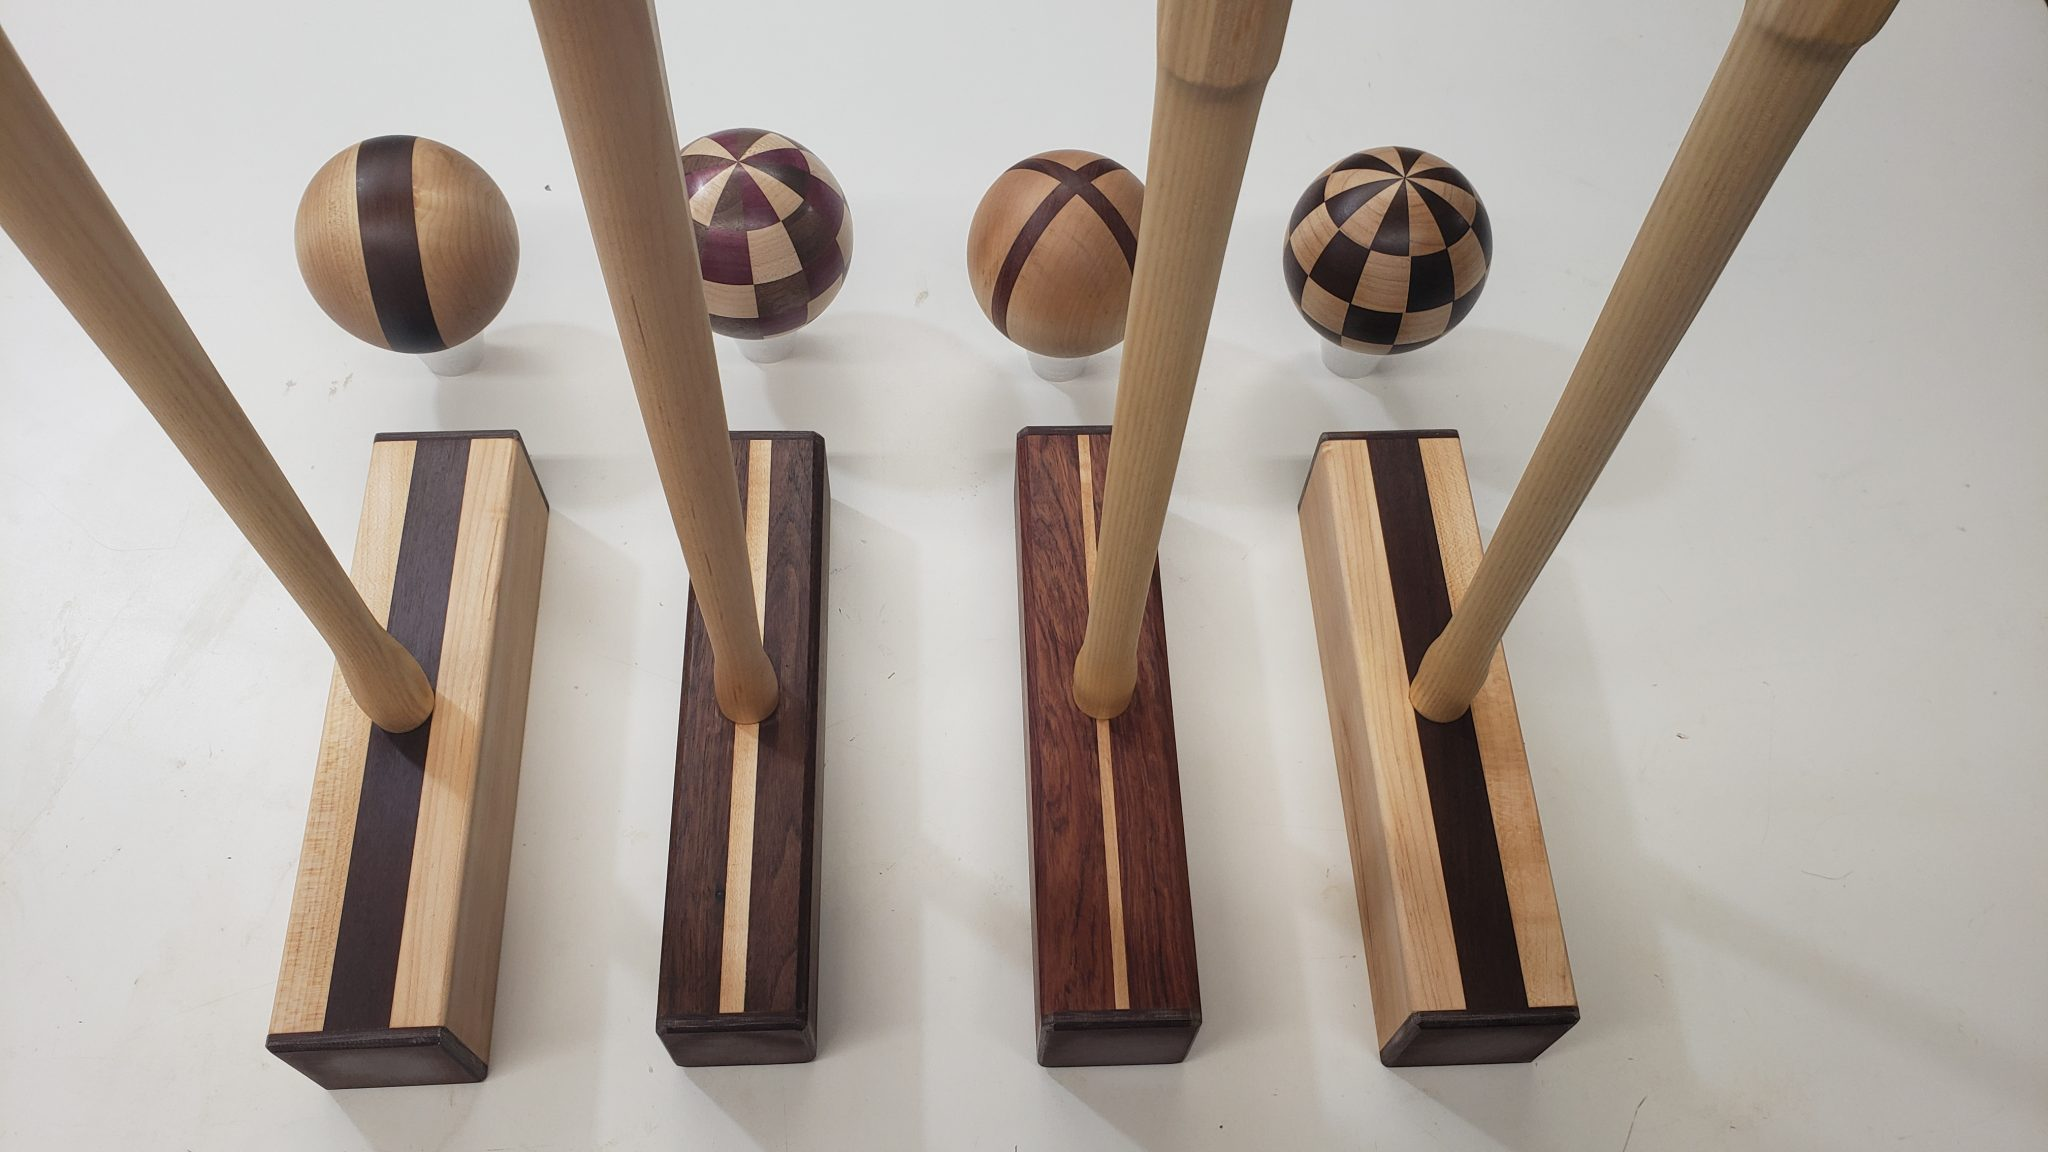 Croquet set made with varied woods